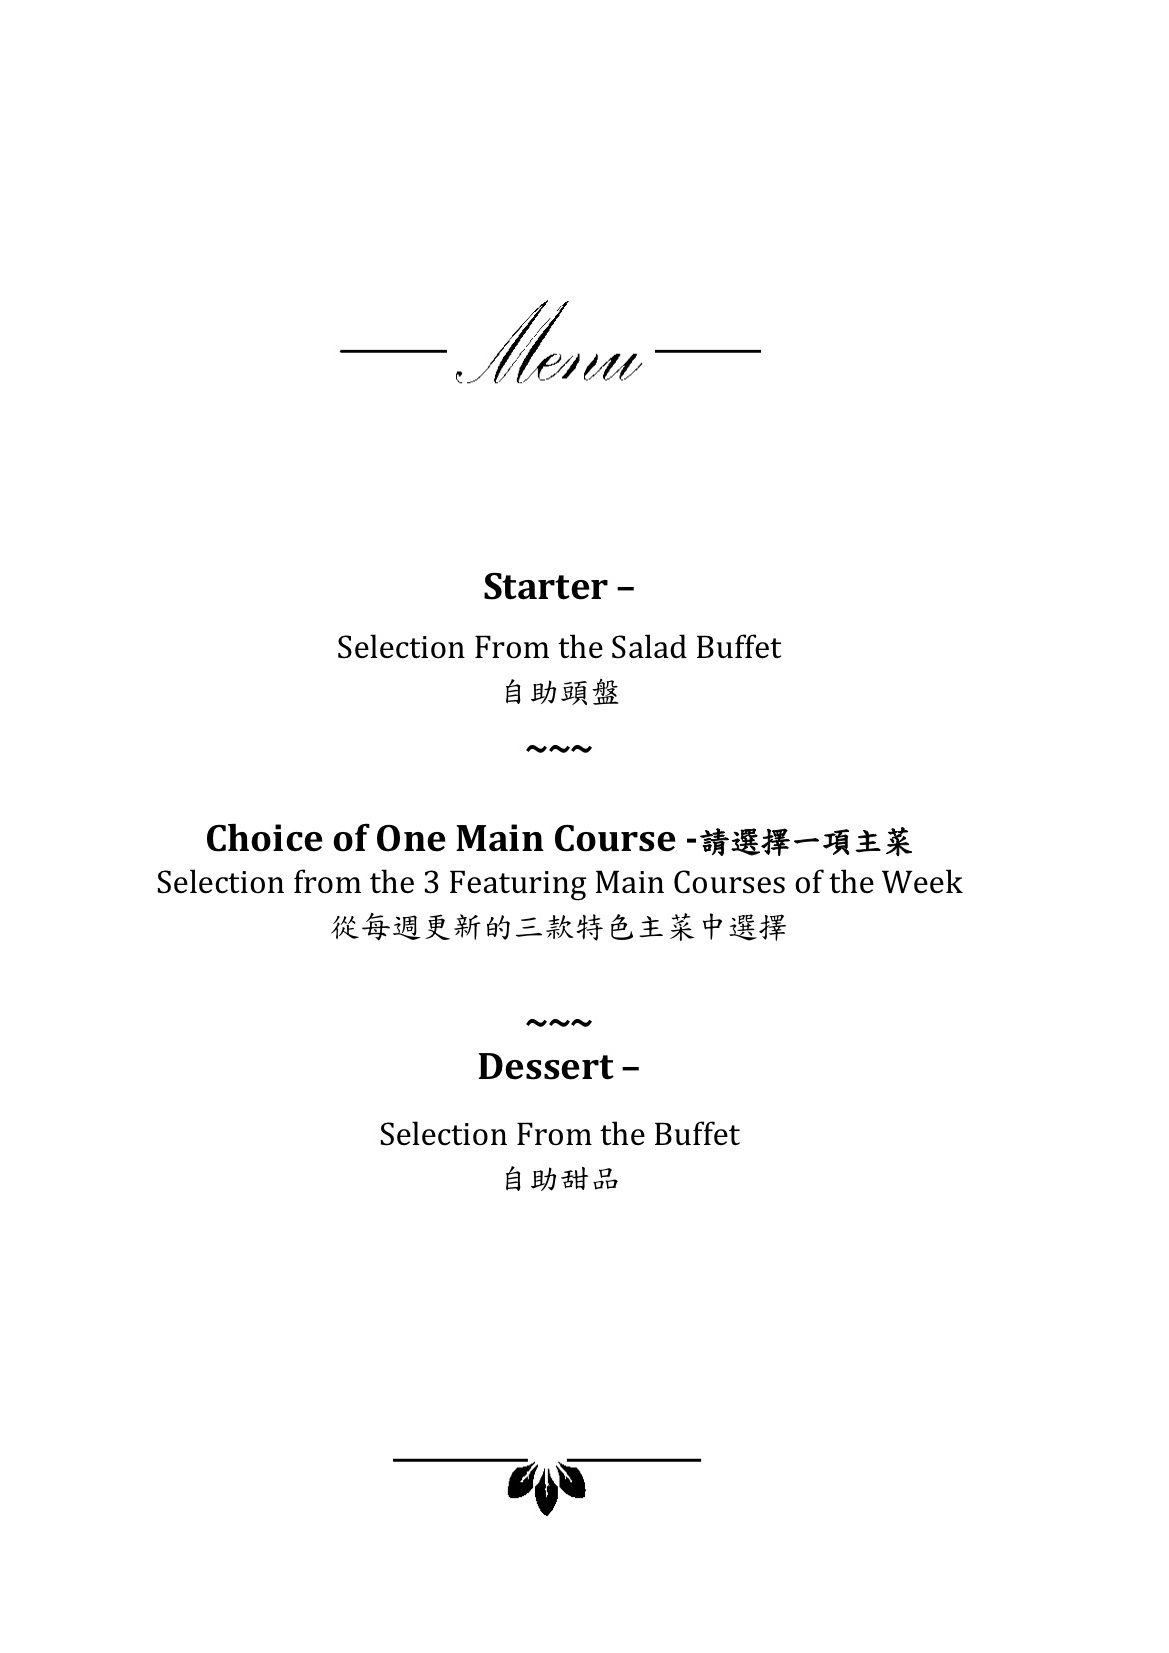 Buffet lunch menu 1